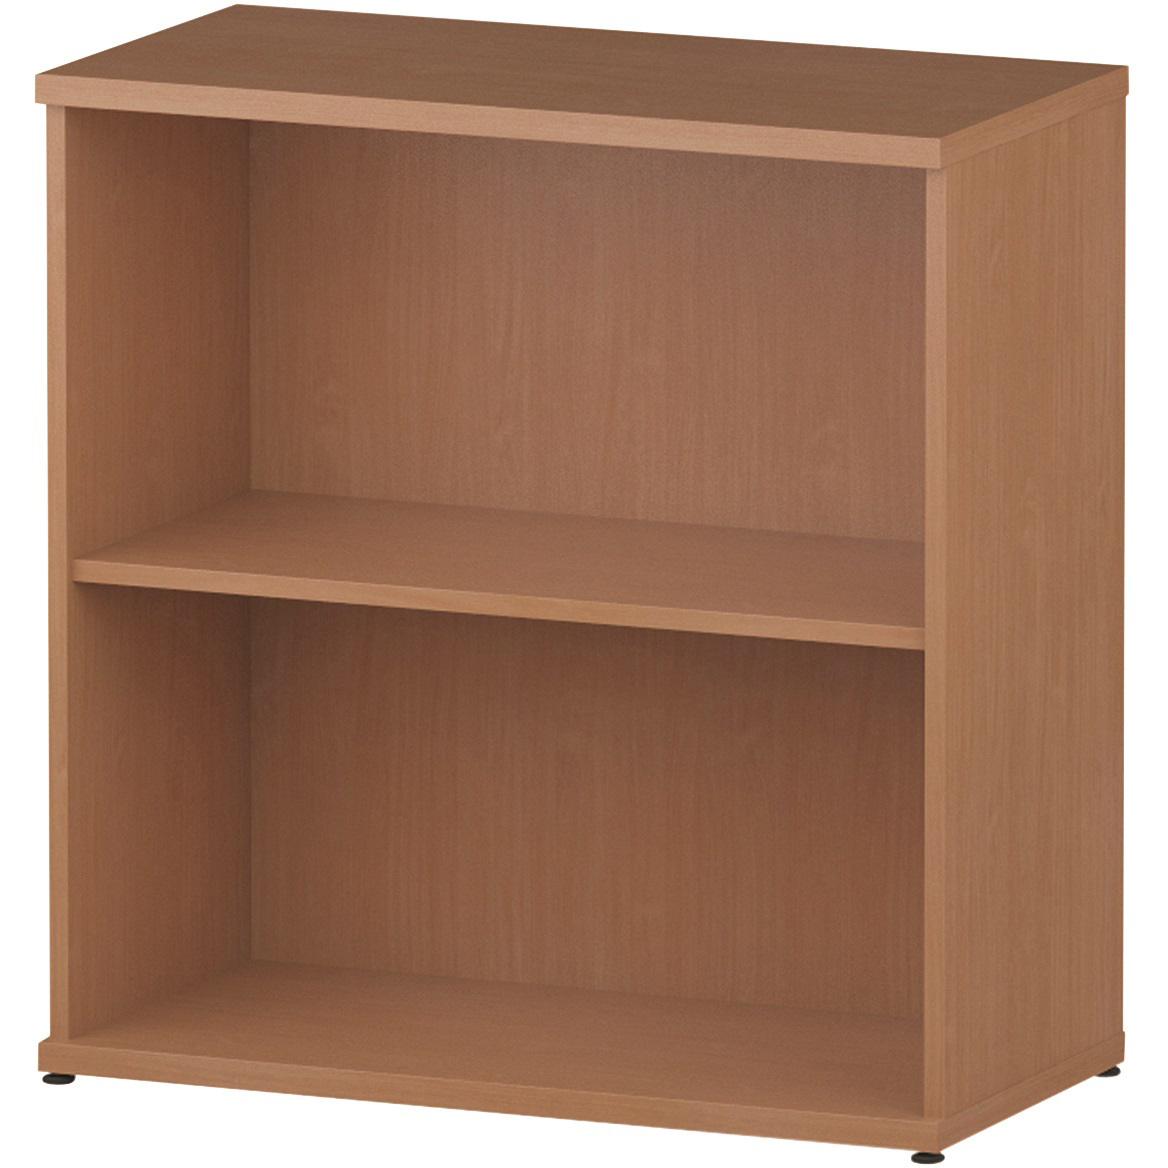 Trexus Office Low Bookcase 800x400x800mm 1 Shelf Beech Ref I000049